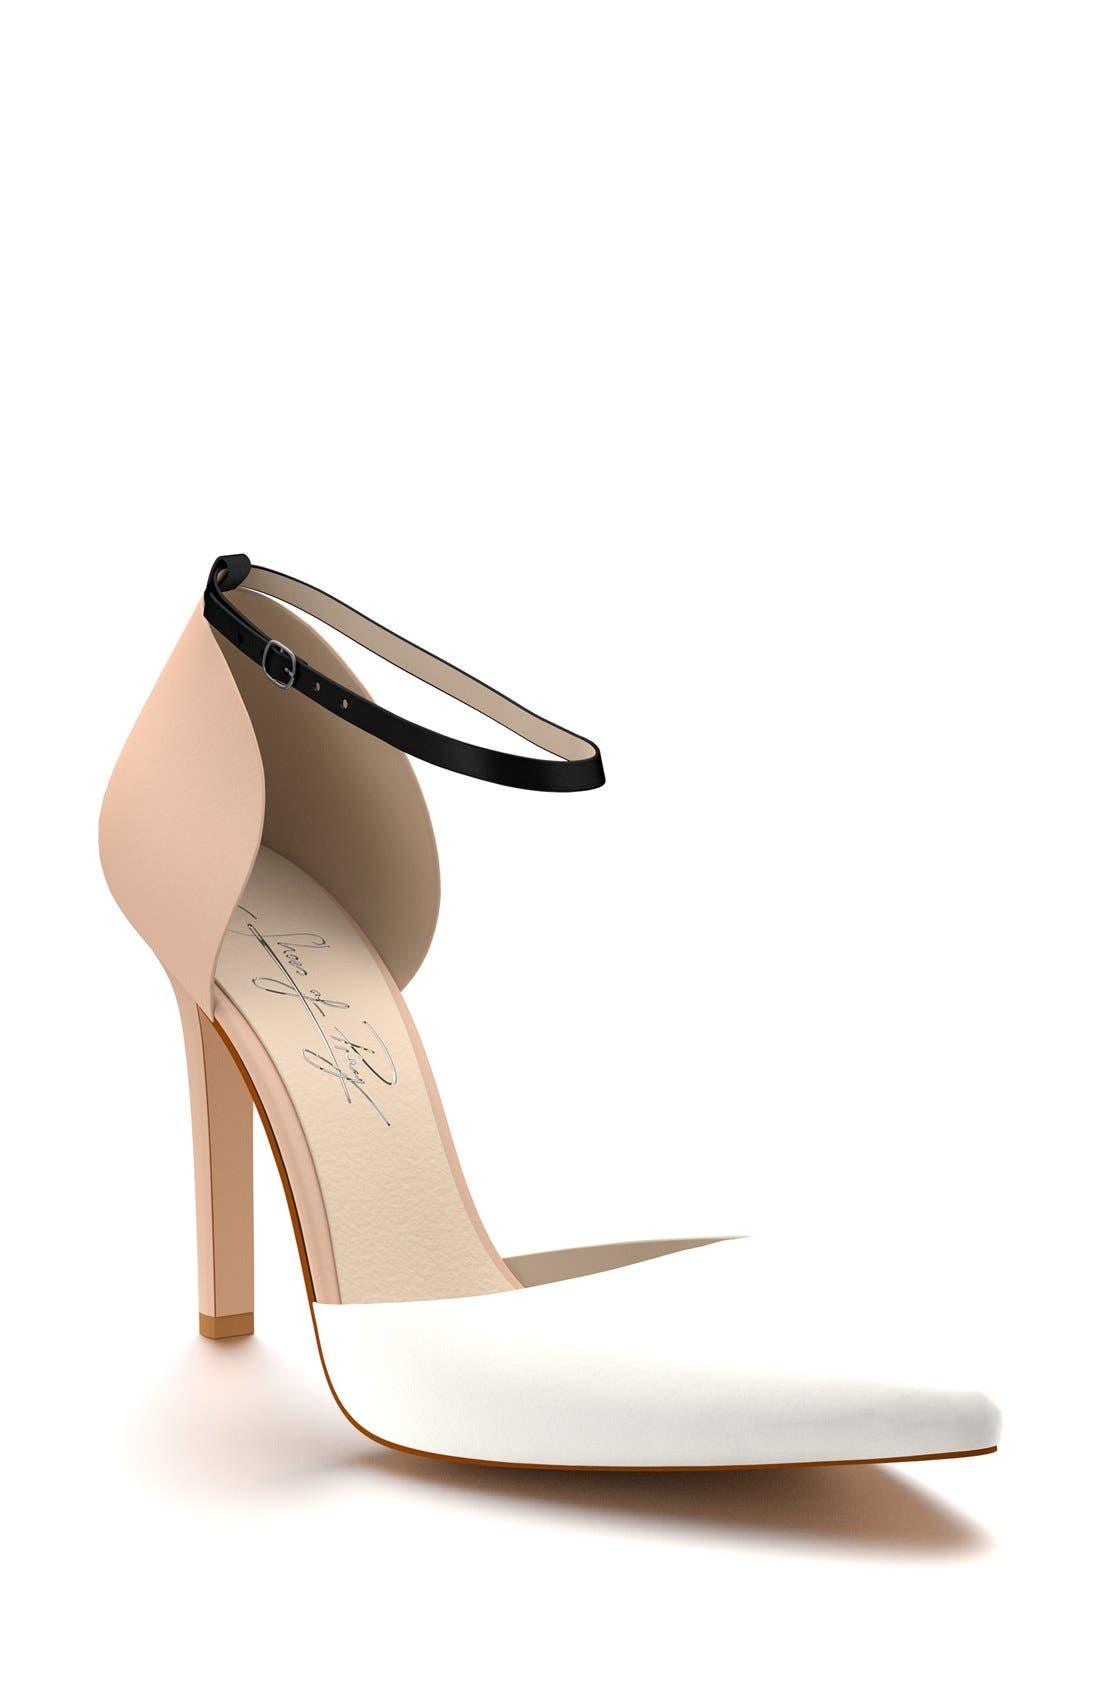 SHOES OF PREY dOrsay Ankle Strap Pump